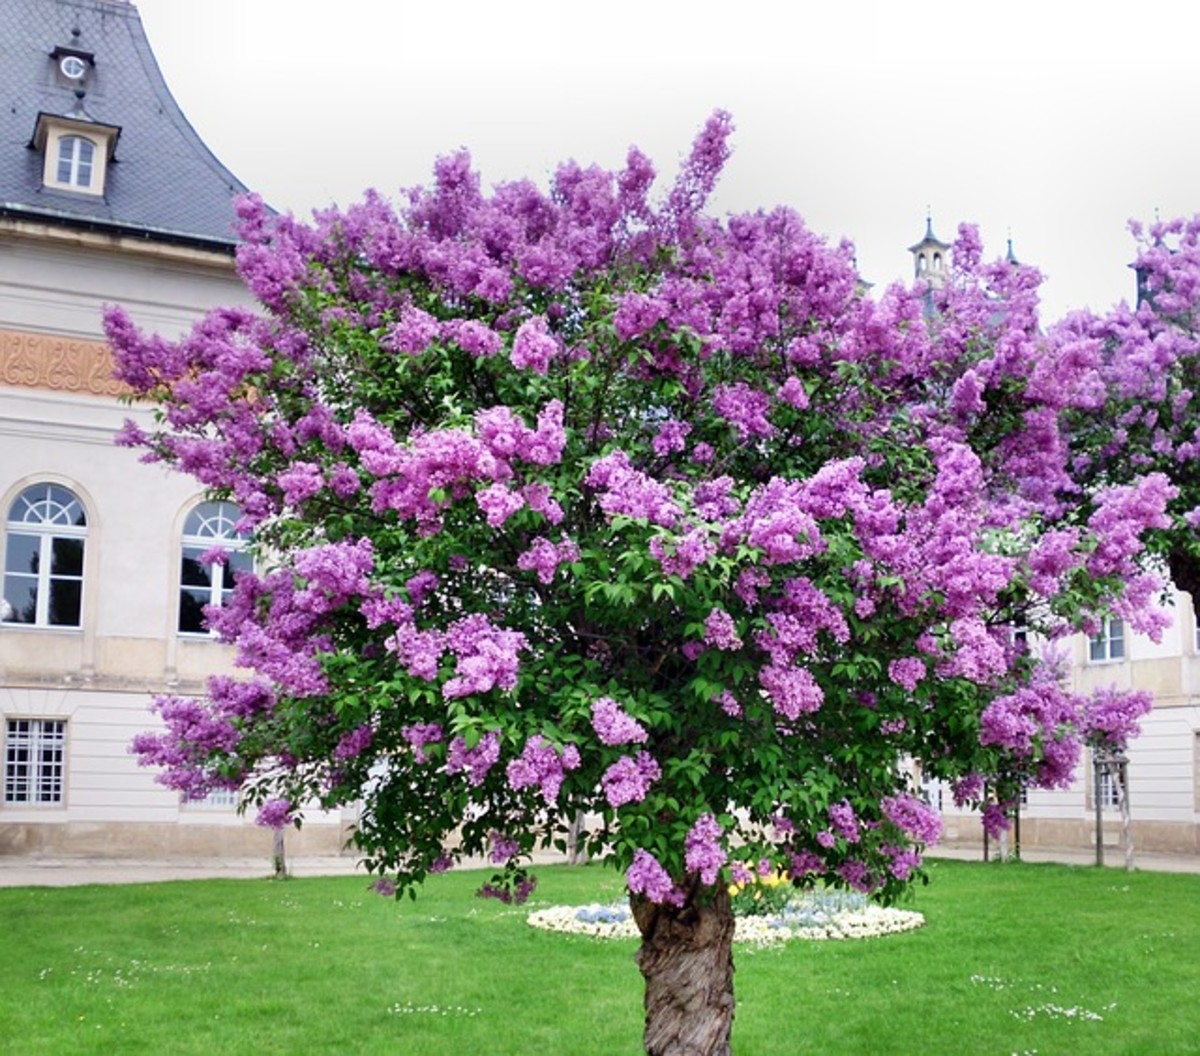 Lilac Tree in Spring